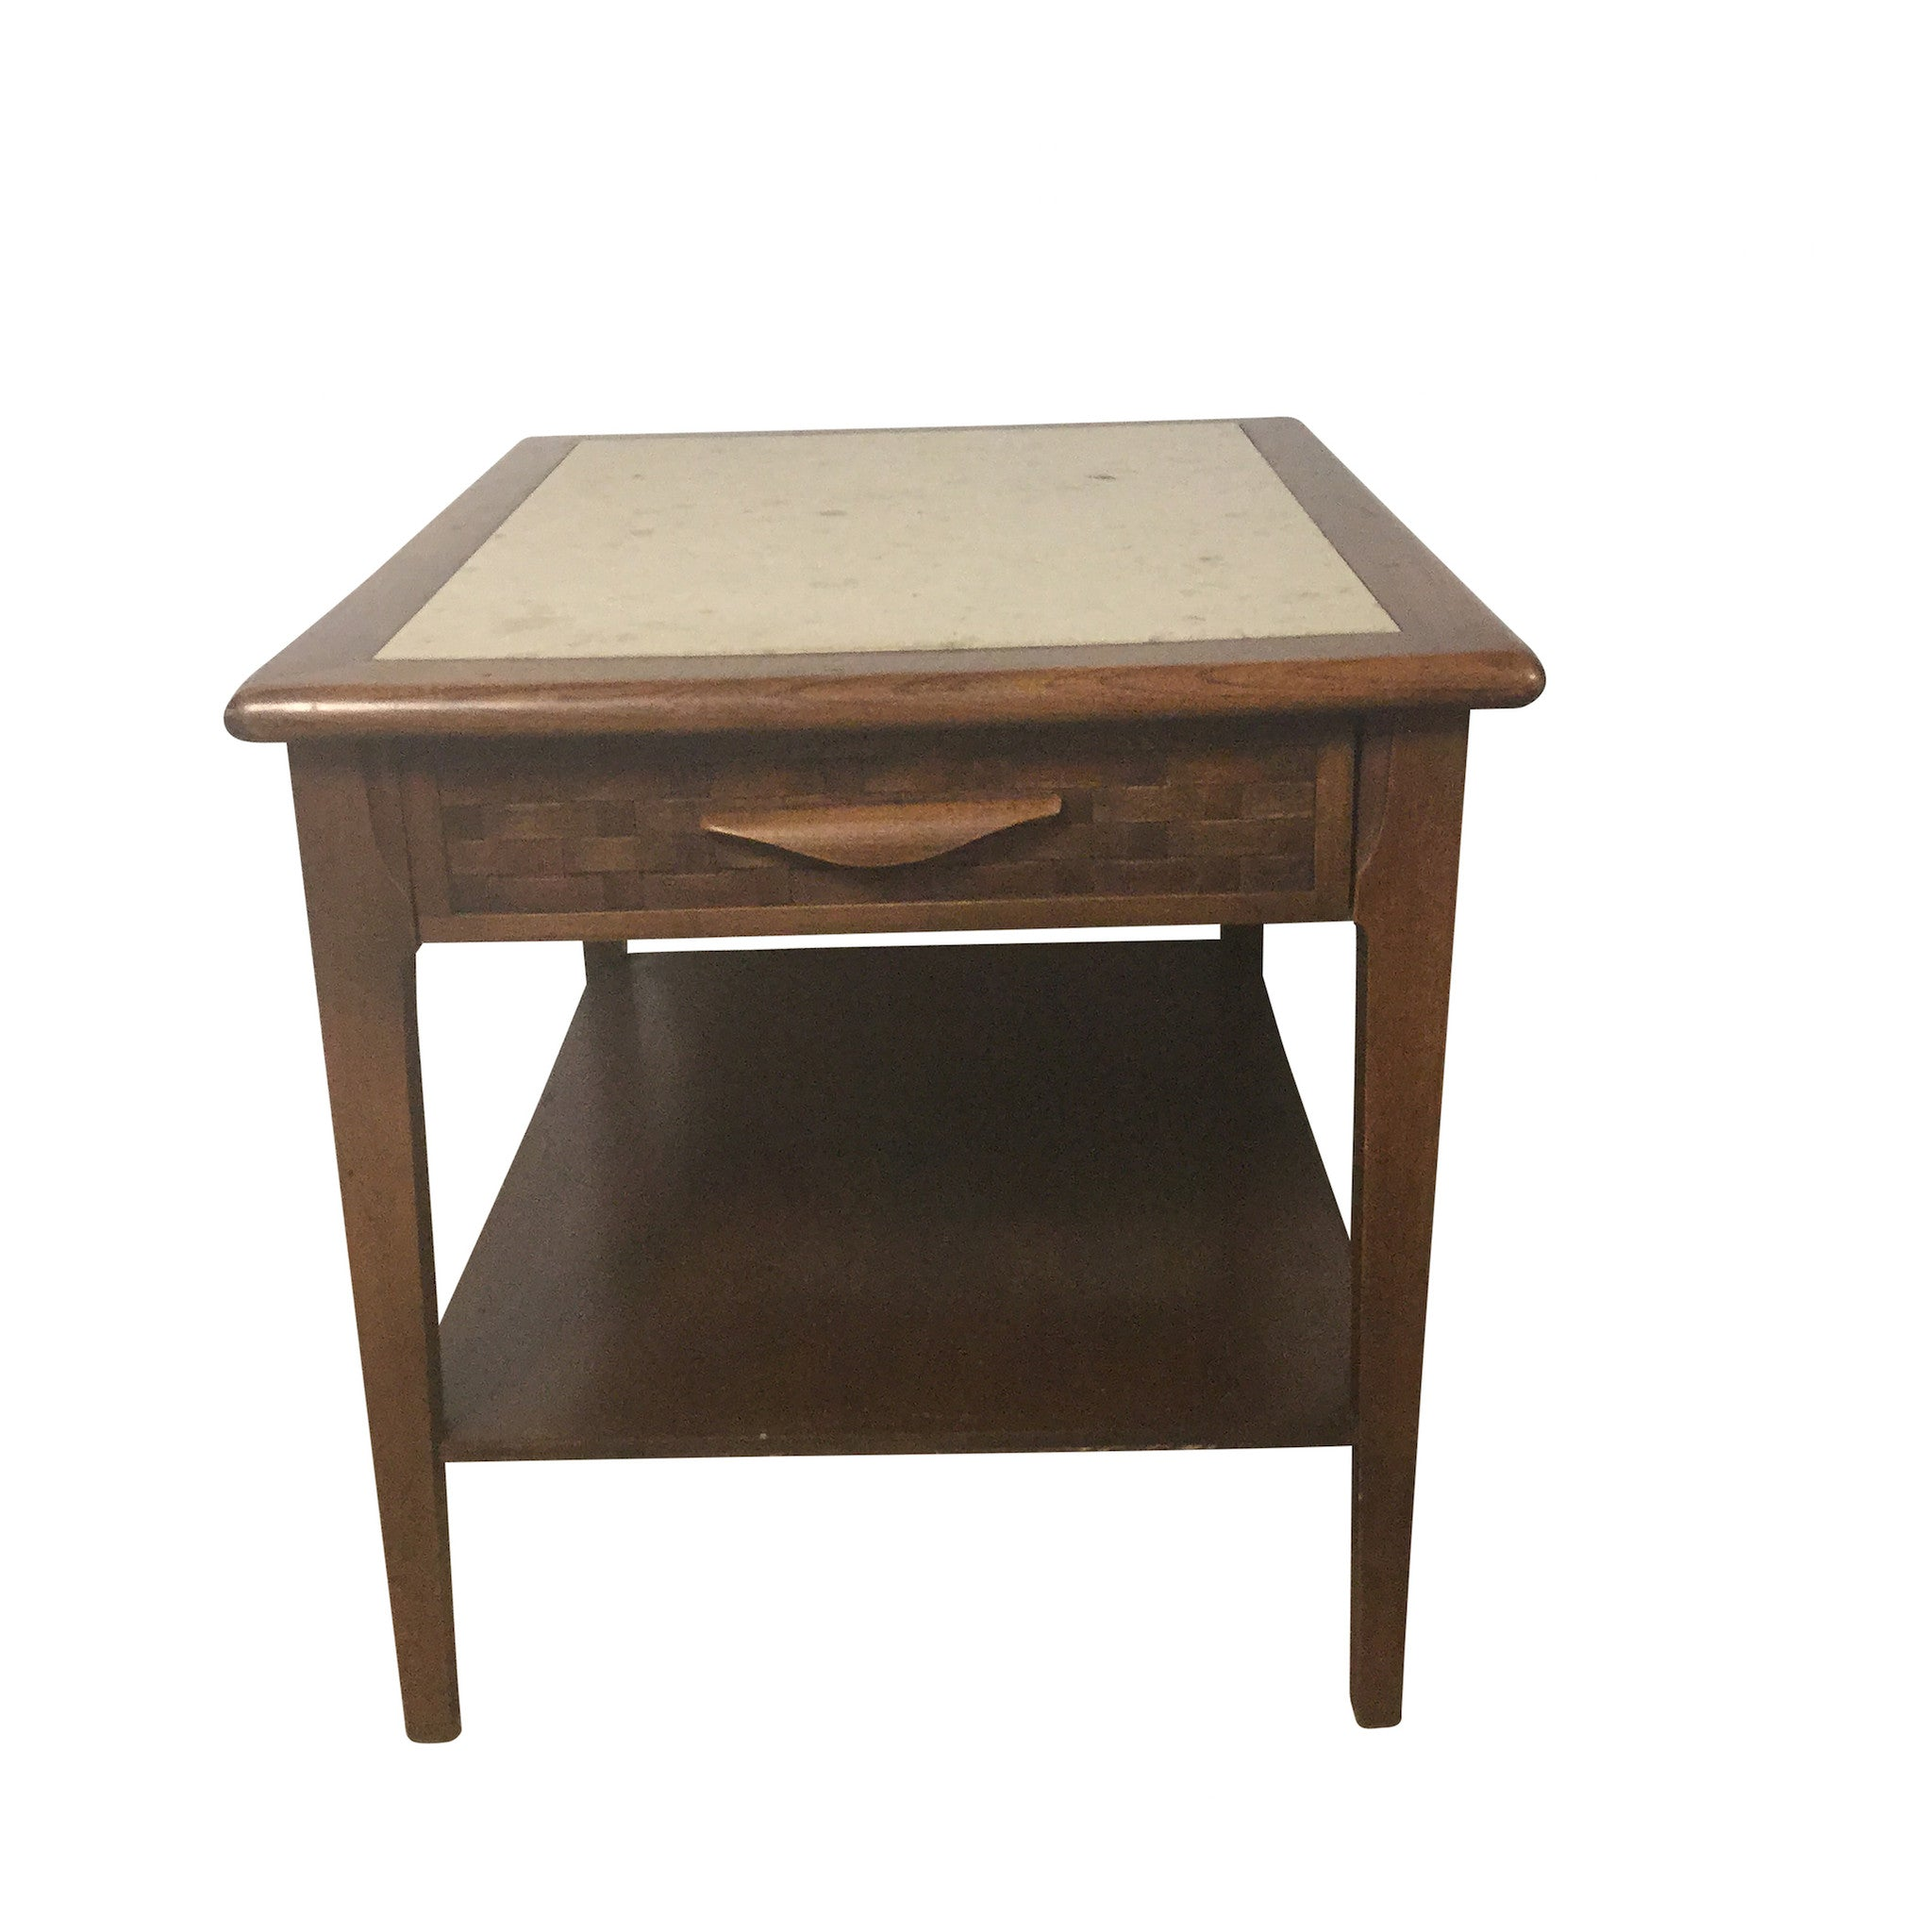 Wood and Travertine End Table - Barefoot Dwelling